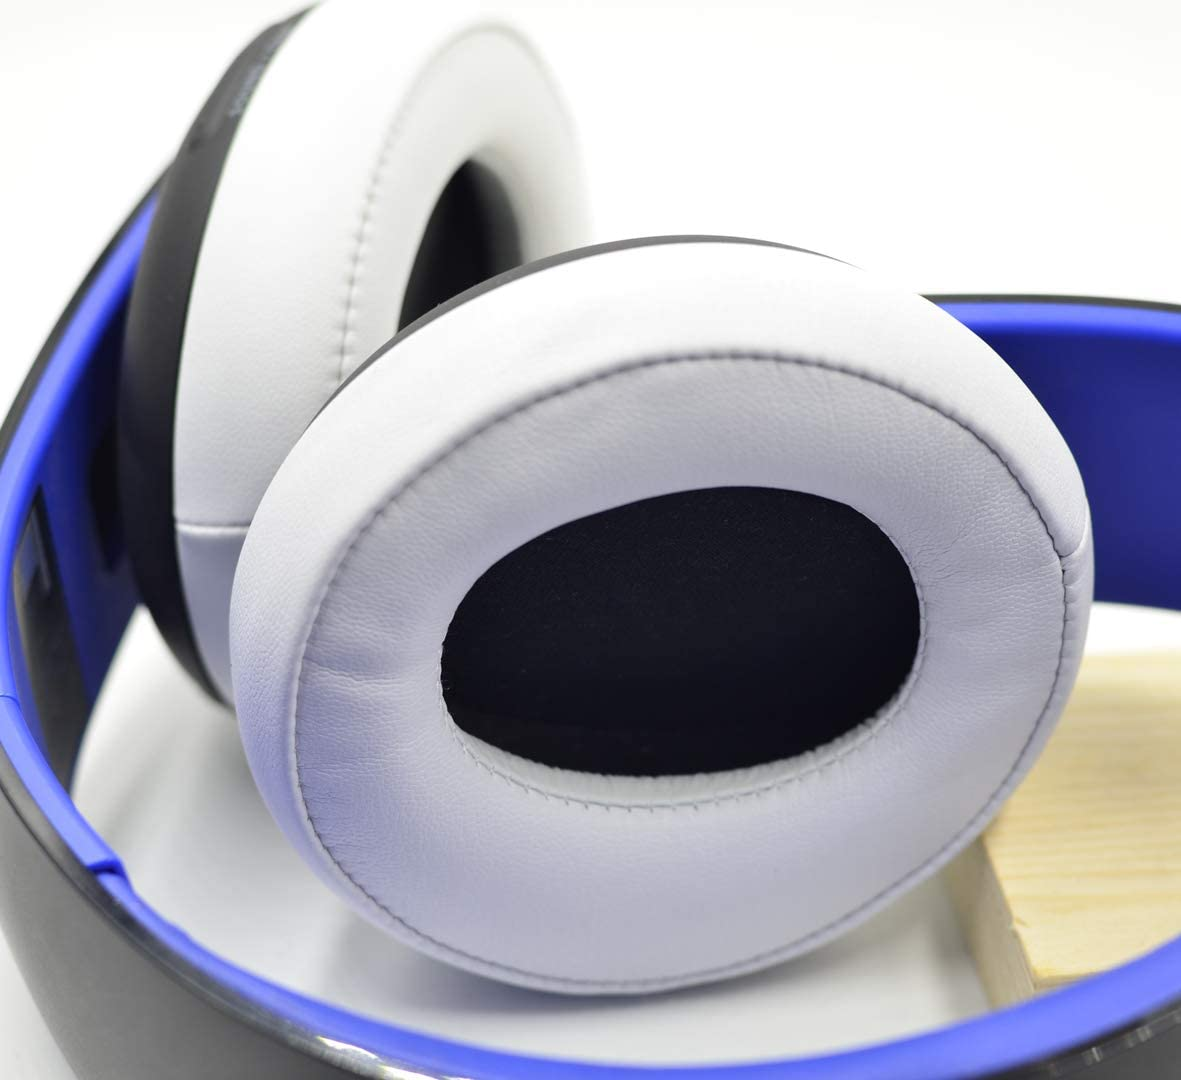 Defean Upgrade earpads Replacement for Sony Gold Wireless Headset PS3 PS4 7.1 Virtual Surround Sound CECHYA-0083 Headphone Blue